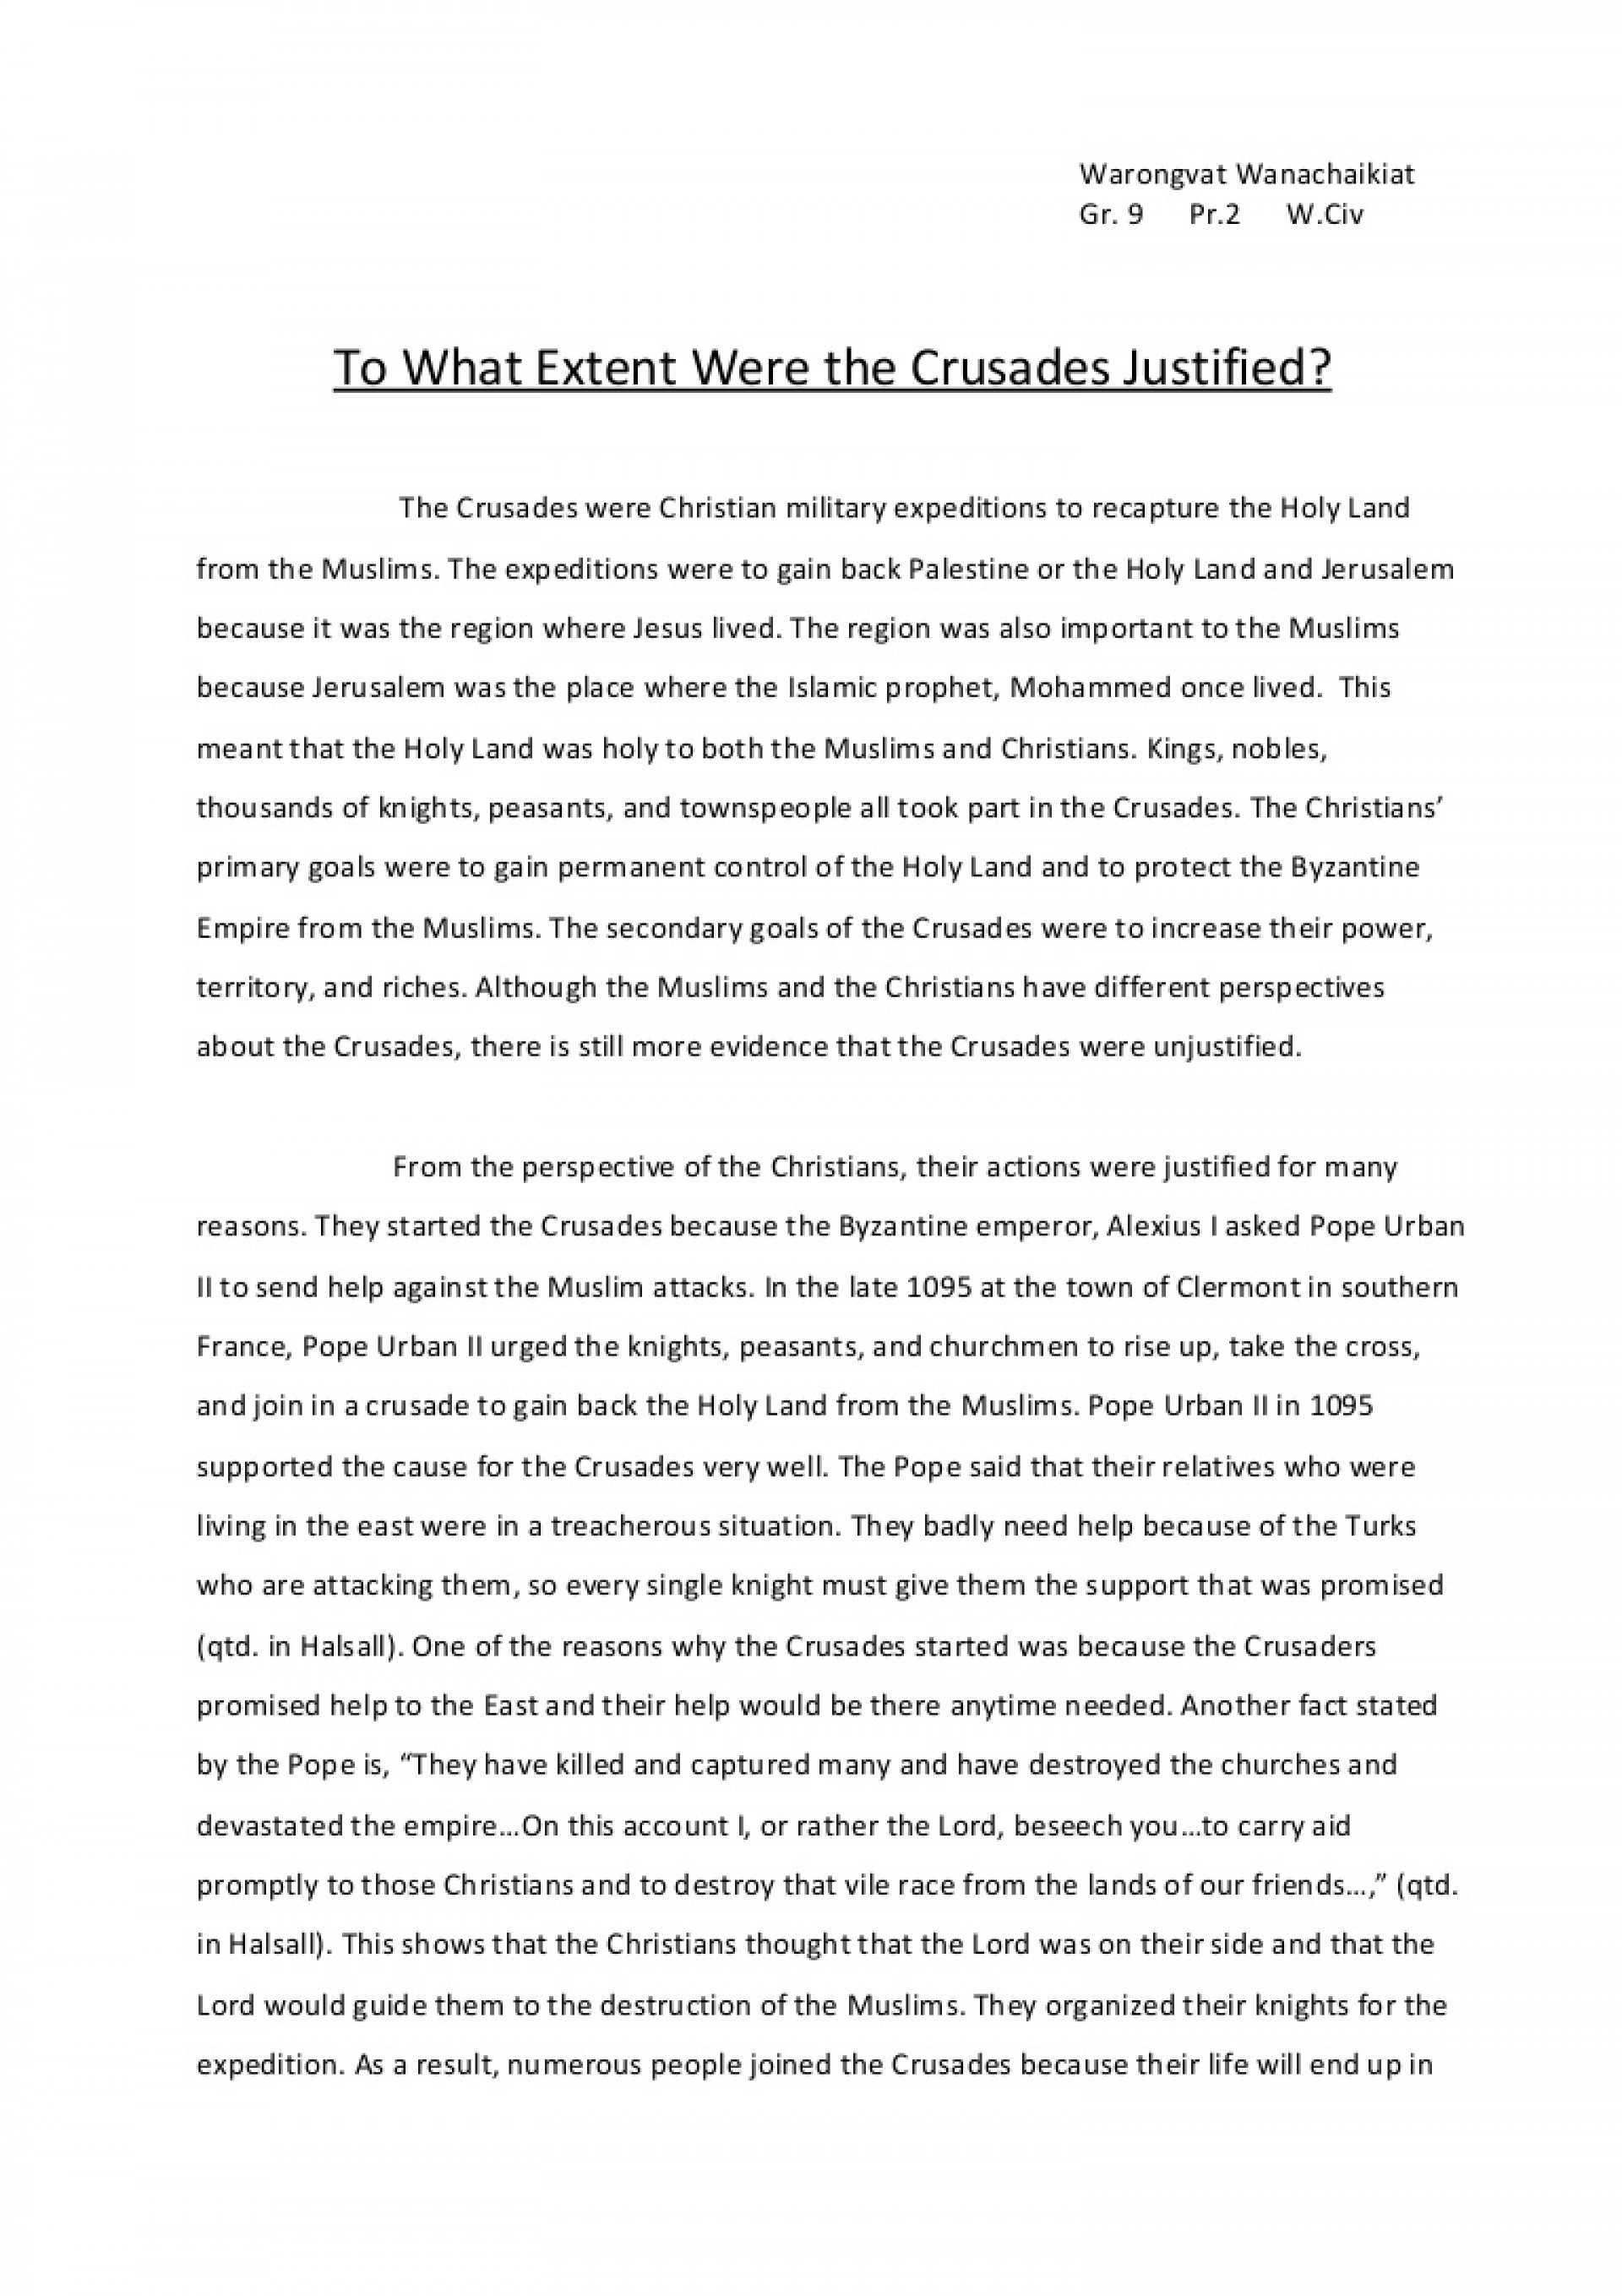 001 Crusades Essay Towhatextentwerethecrusadesjustified Phpapp01 Thumbnail Awful Summary Impact Of The Dbq Hook 1920